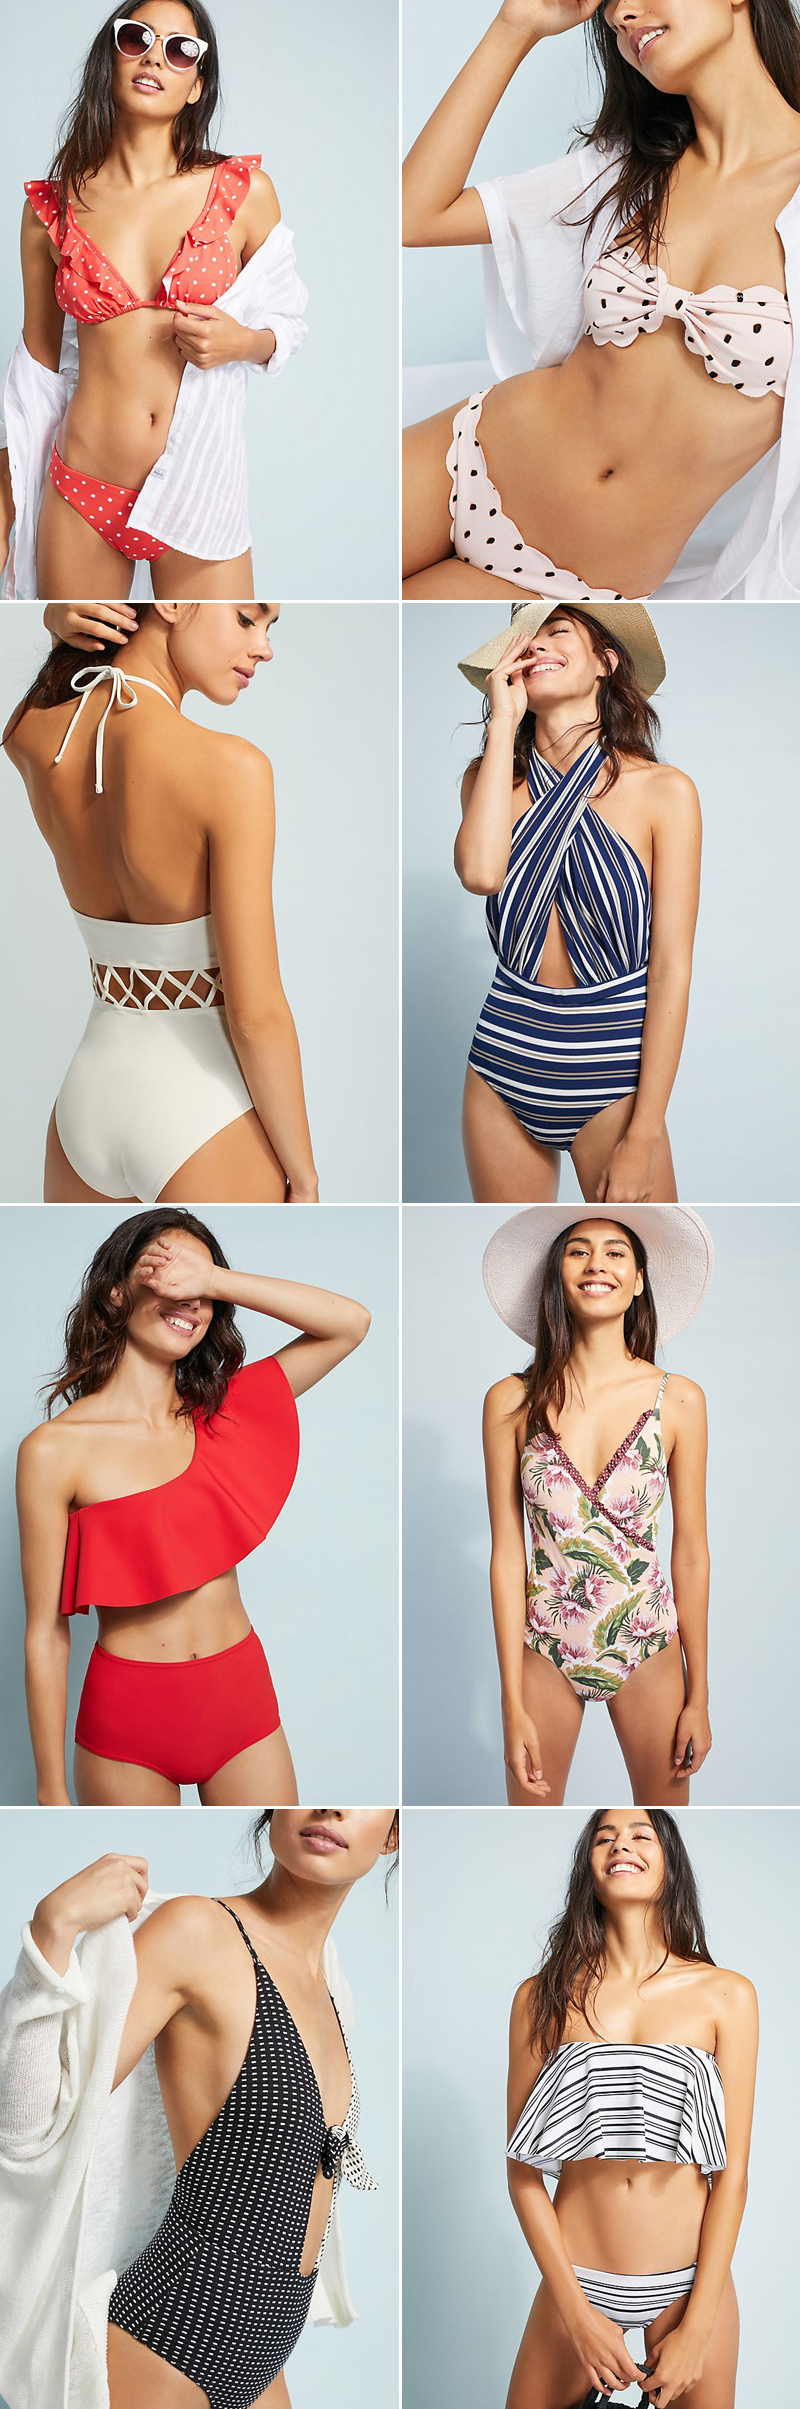 swimsuit05-Anthropologie